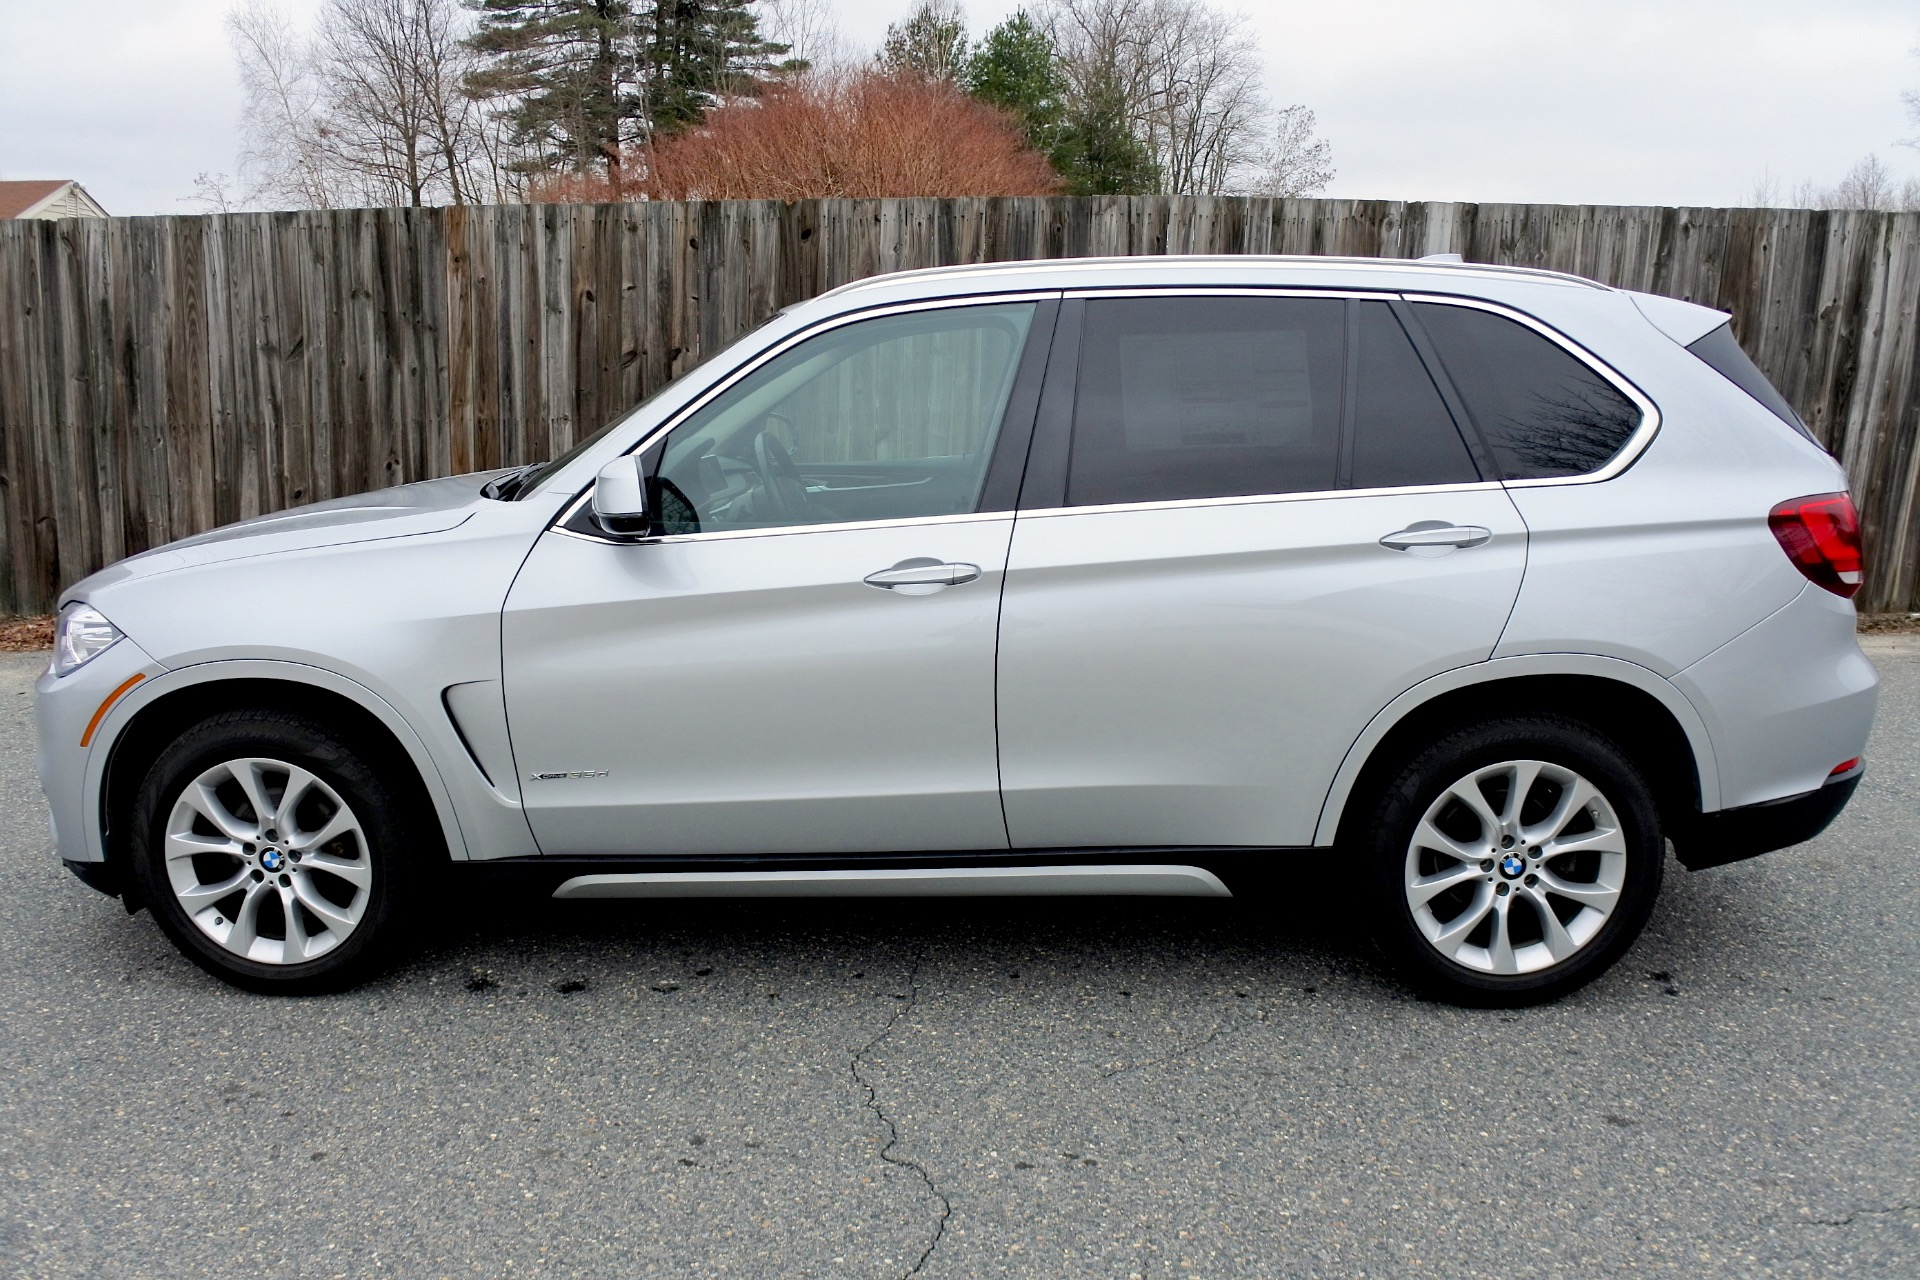 Used 2015 BMW X5 AWD 4dr xDrive35d Used 2015 BMW X5 AWD 4dr xDrive35d for sale  at Metro West Motorcars LLC in Shrewsbury MA 2